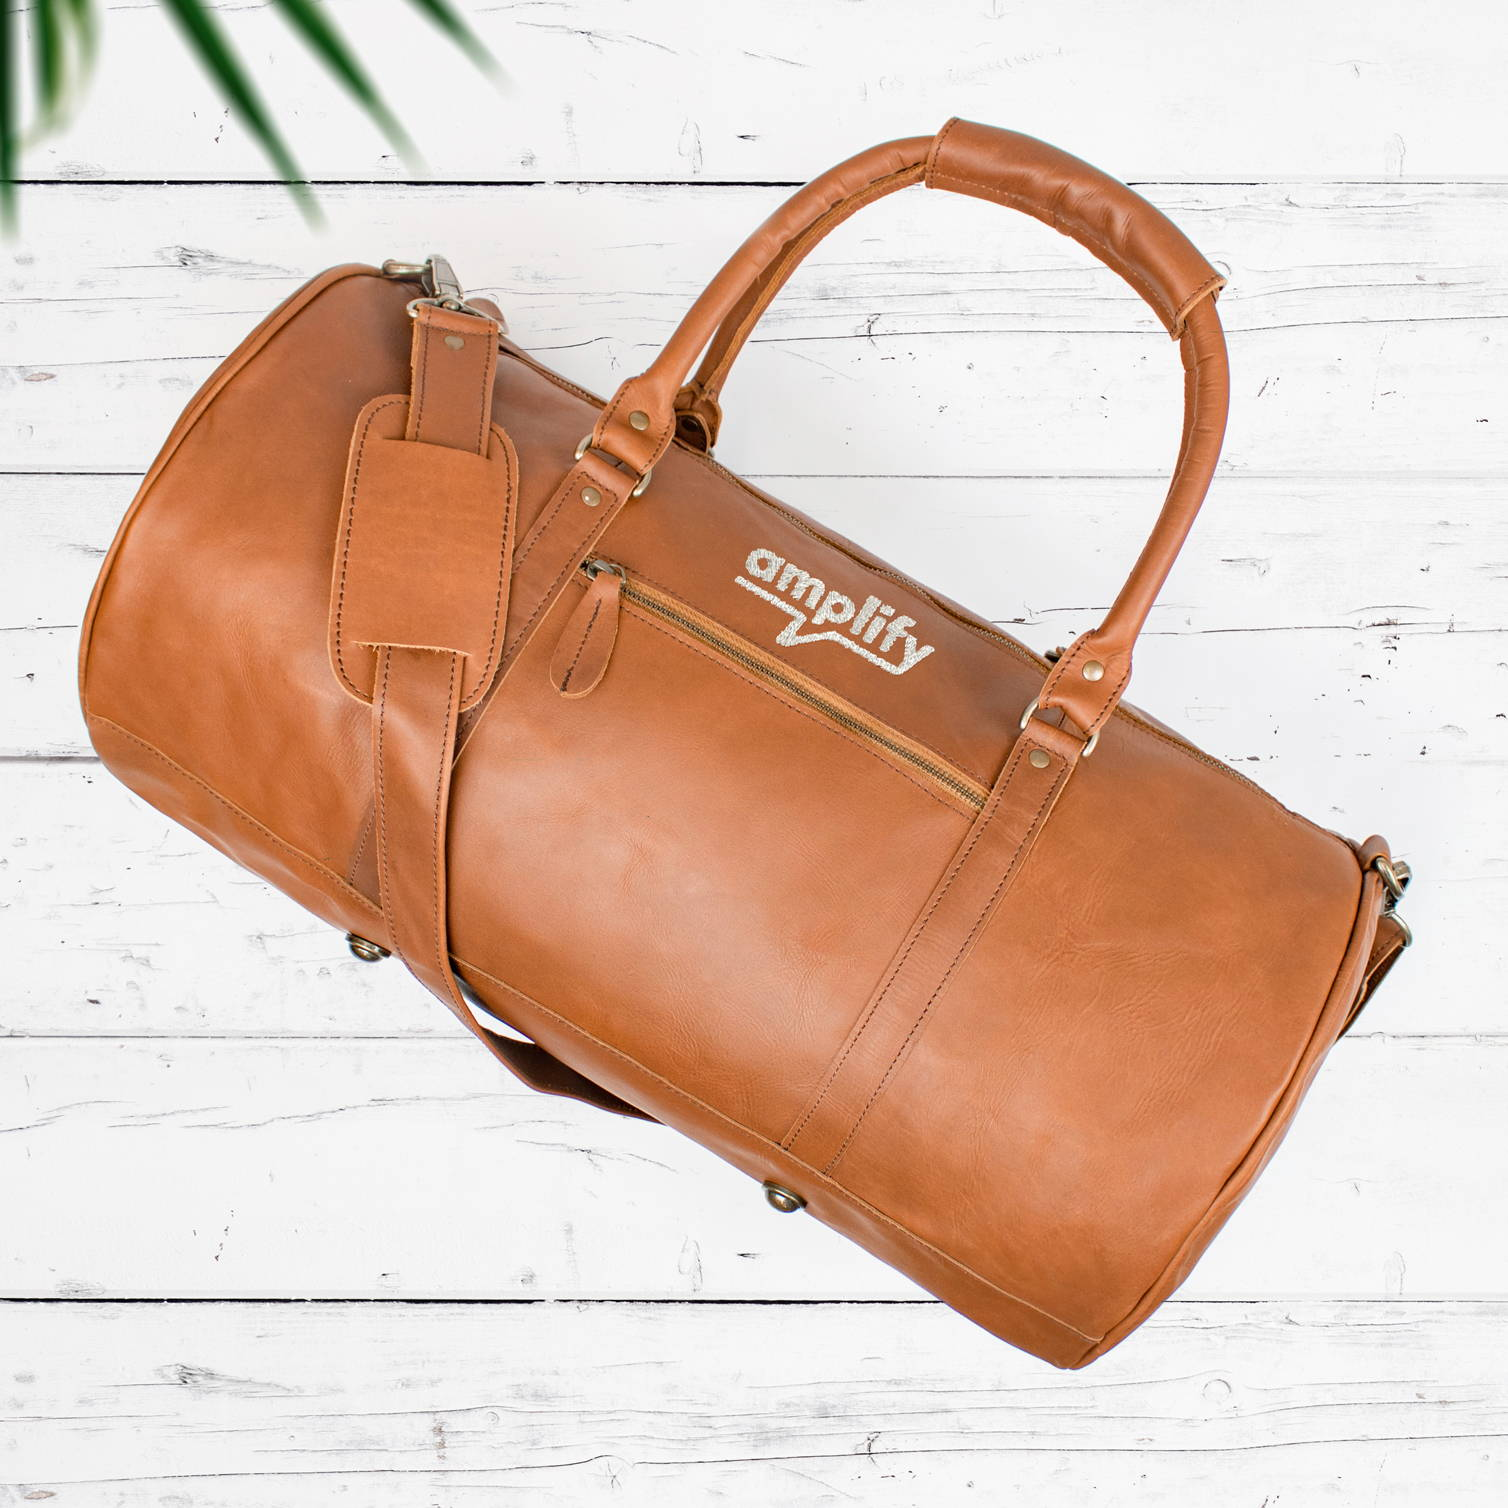 branded leather duffle bag